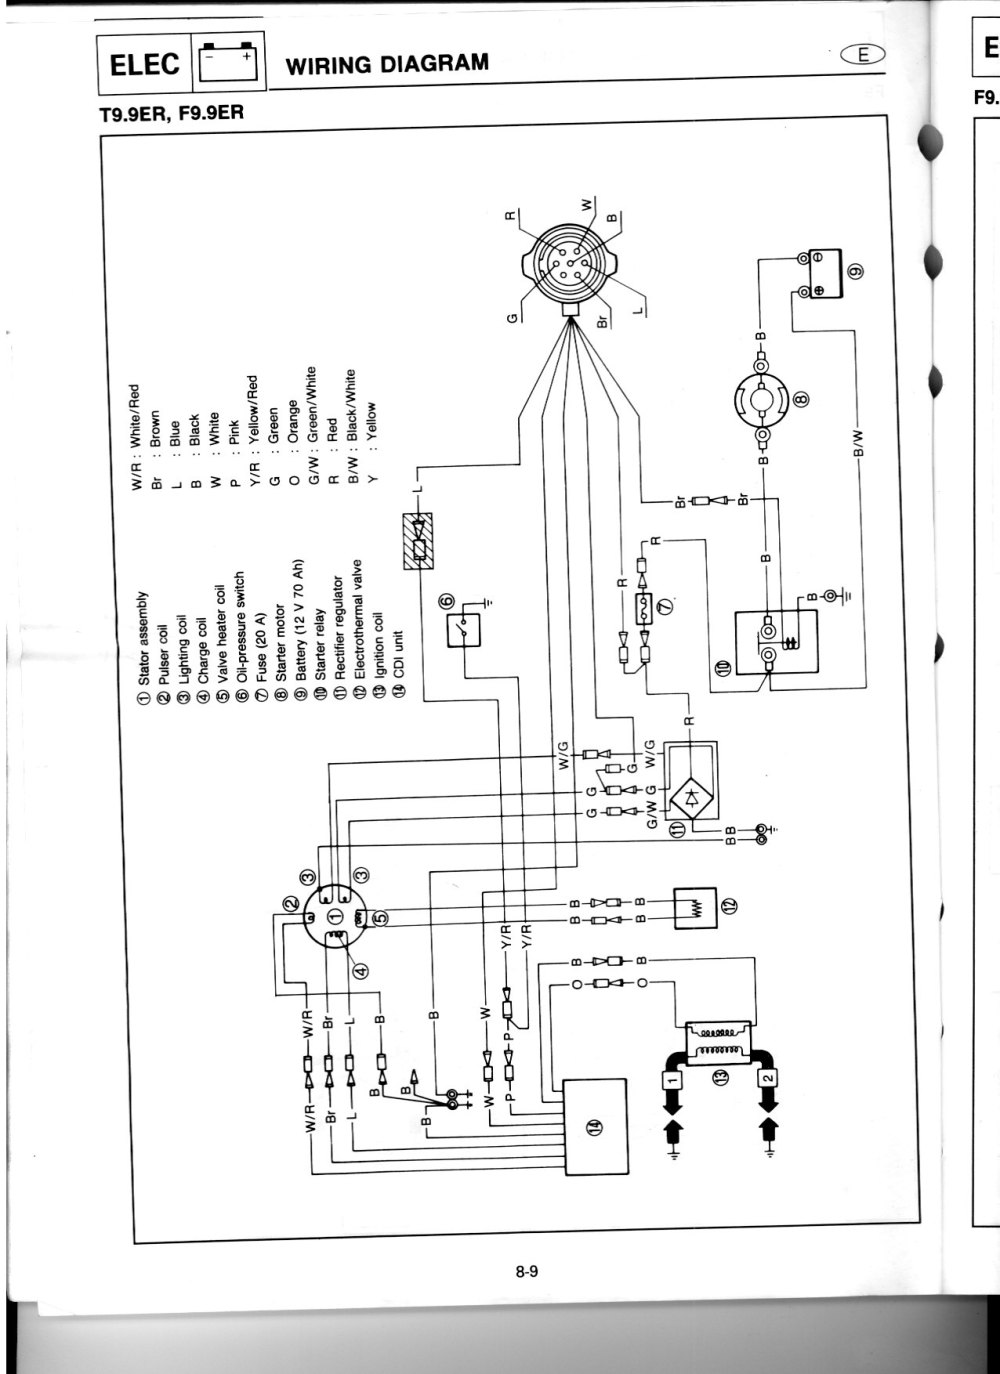 medium resolution of t9 9 electrical wiring diagram needed pdq owners forum 120 force outboard wiring yamaha outboard wiring